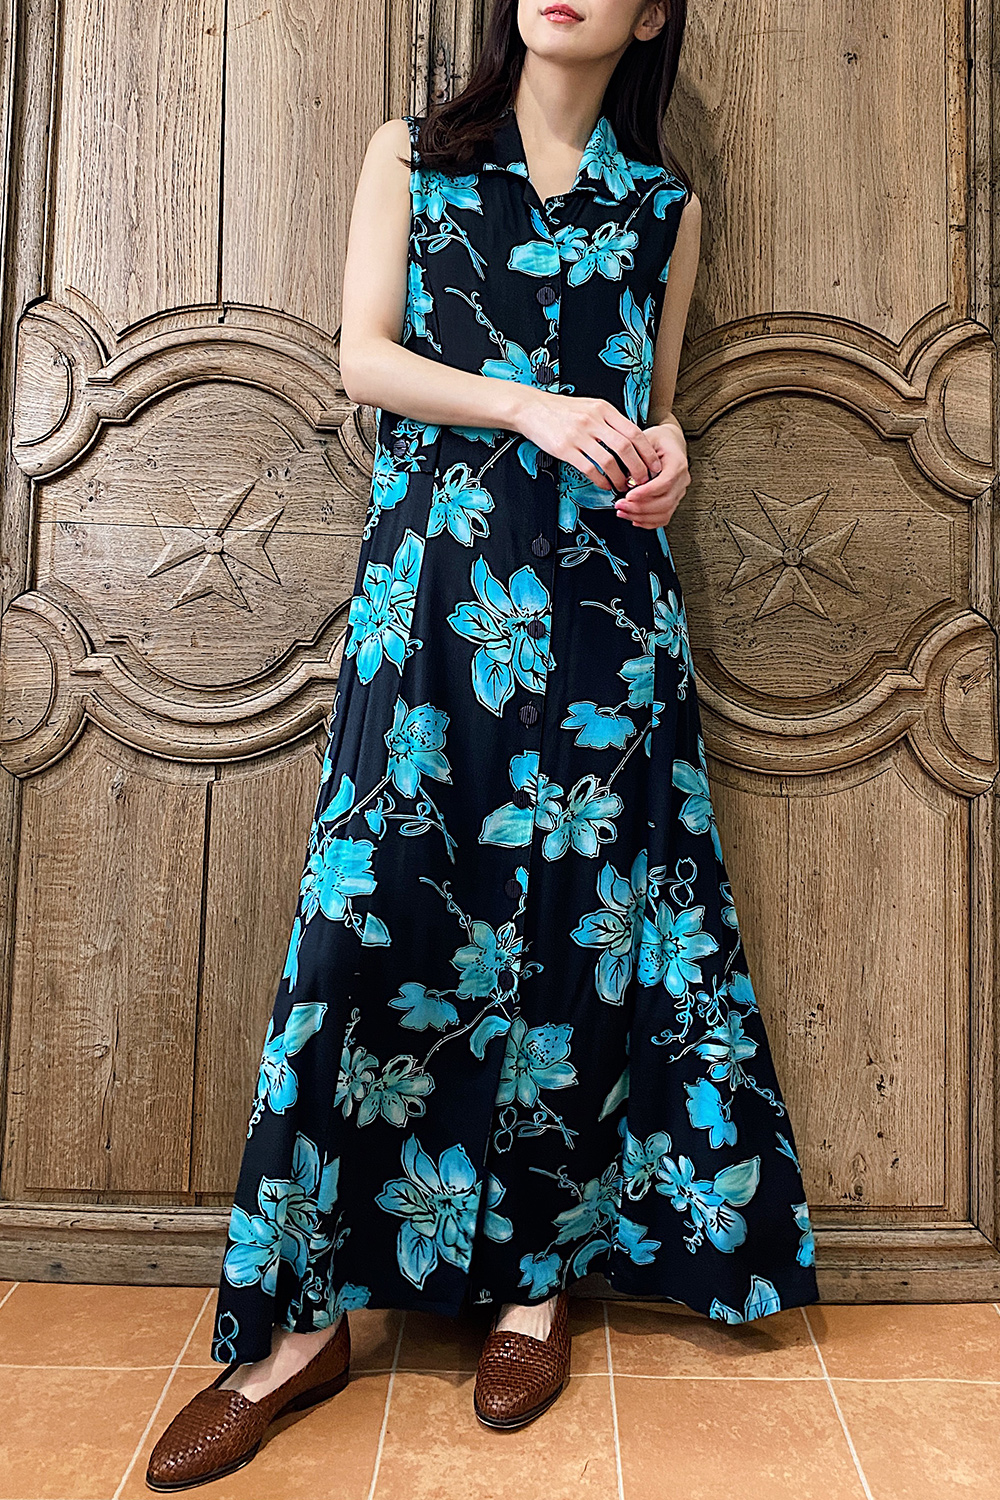 Black×Blue Unique Flower Design Dress